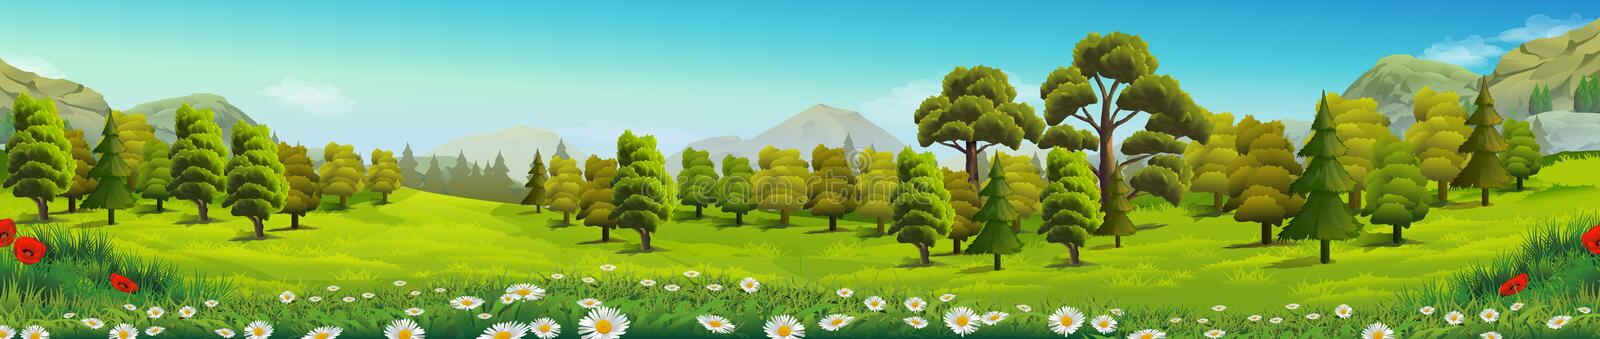 Meadow and forest nature landscape stock photos